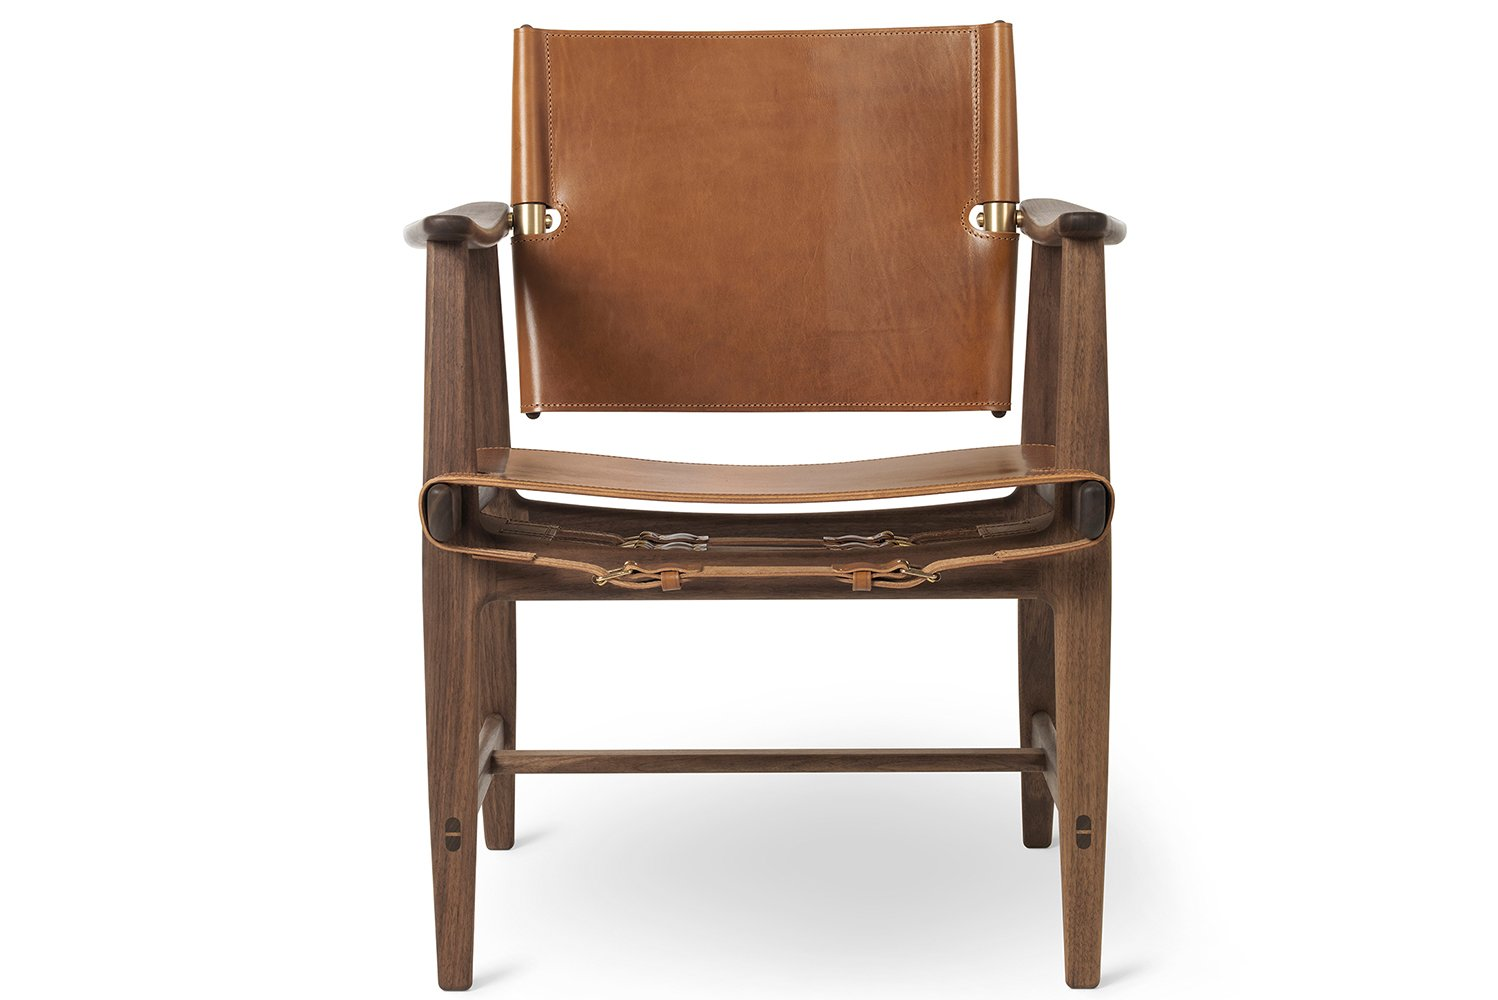 The chair remained a showpiece until this year, when Carl Hansen & Son added it to its collection of furniture classics.